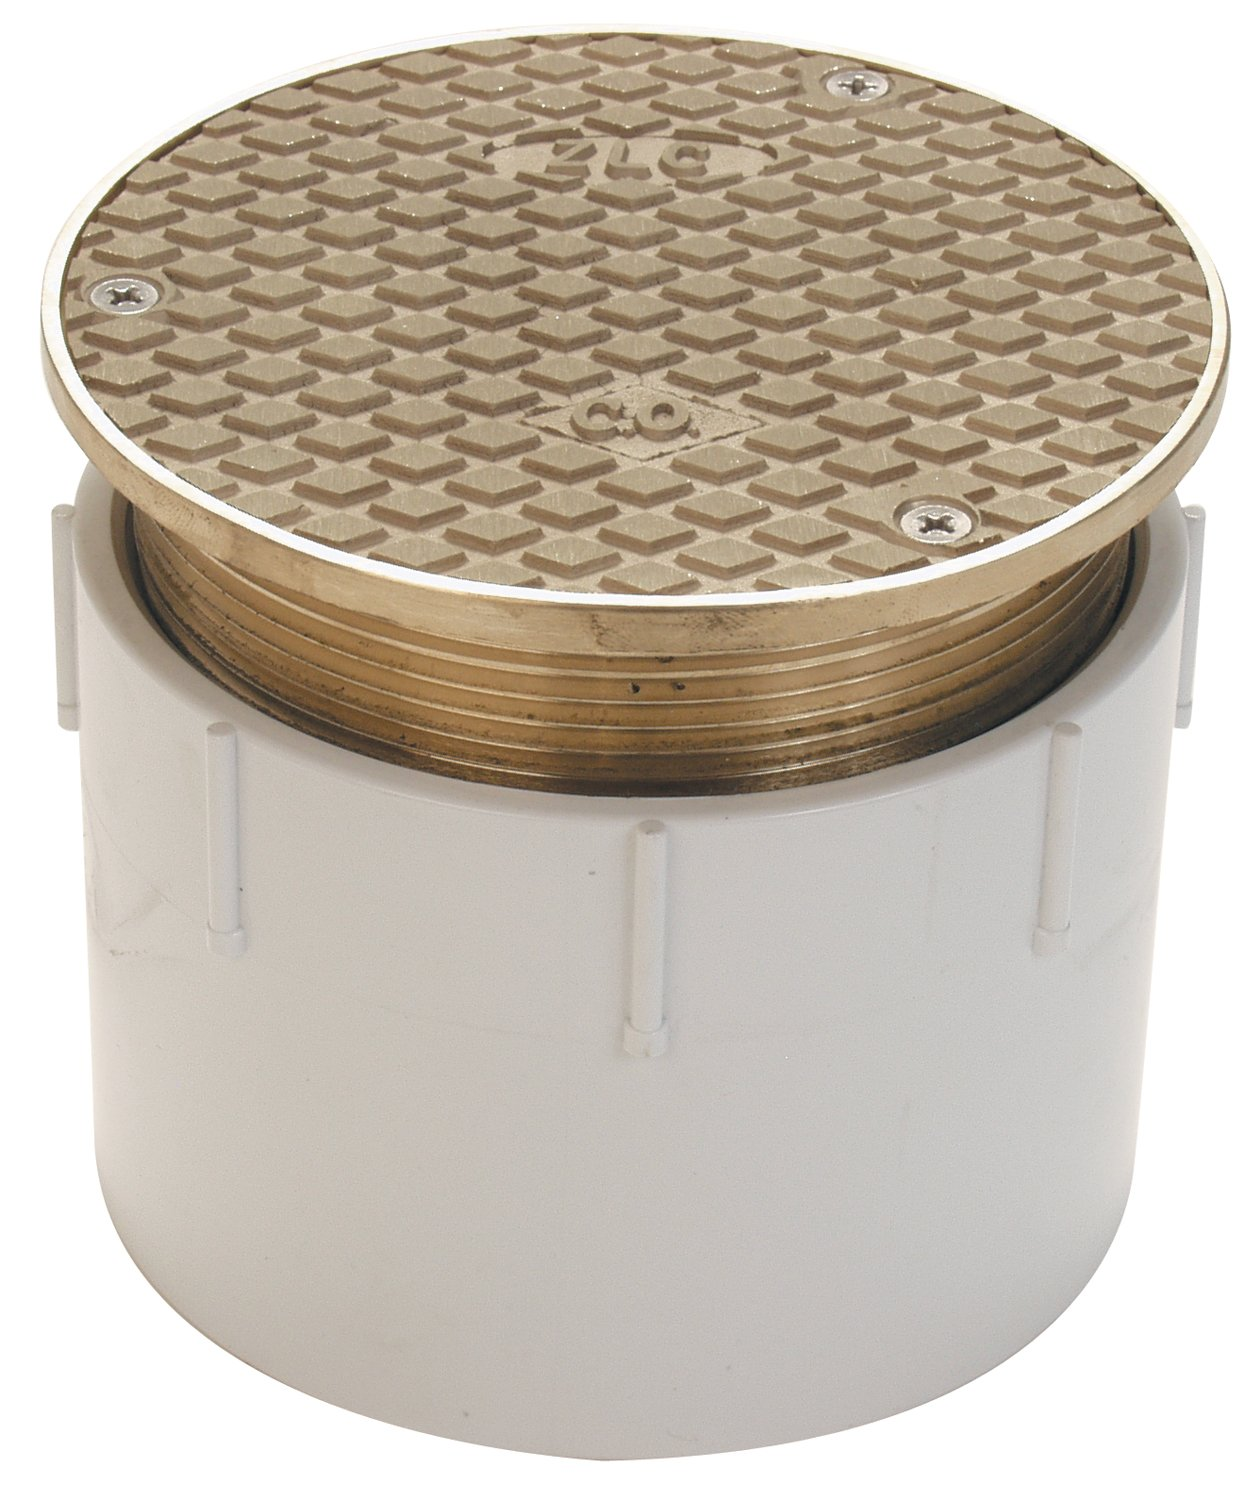 Zurn CO2450-PV4, Adjustable Floor Cleanout, 4 Inch PVC Hub Connection by Zurn